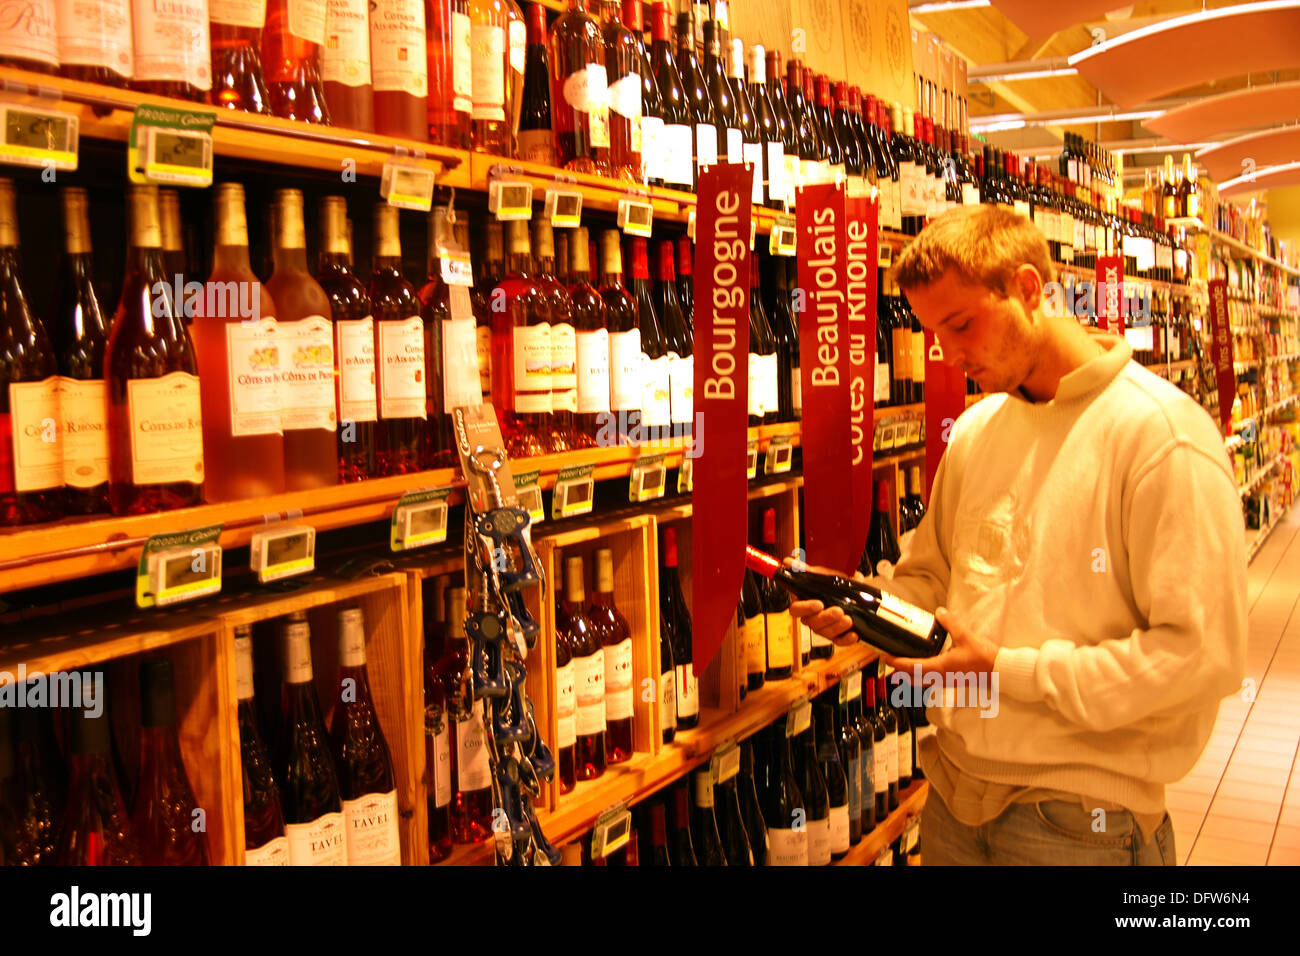 Young man starting to be interested in wines, Gironde, Aquitaine, France - Stock Image